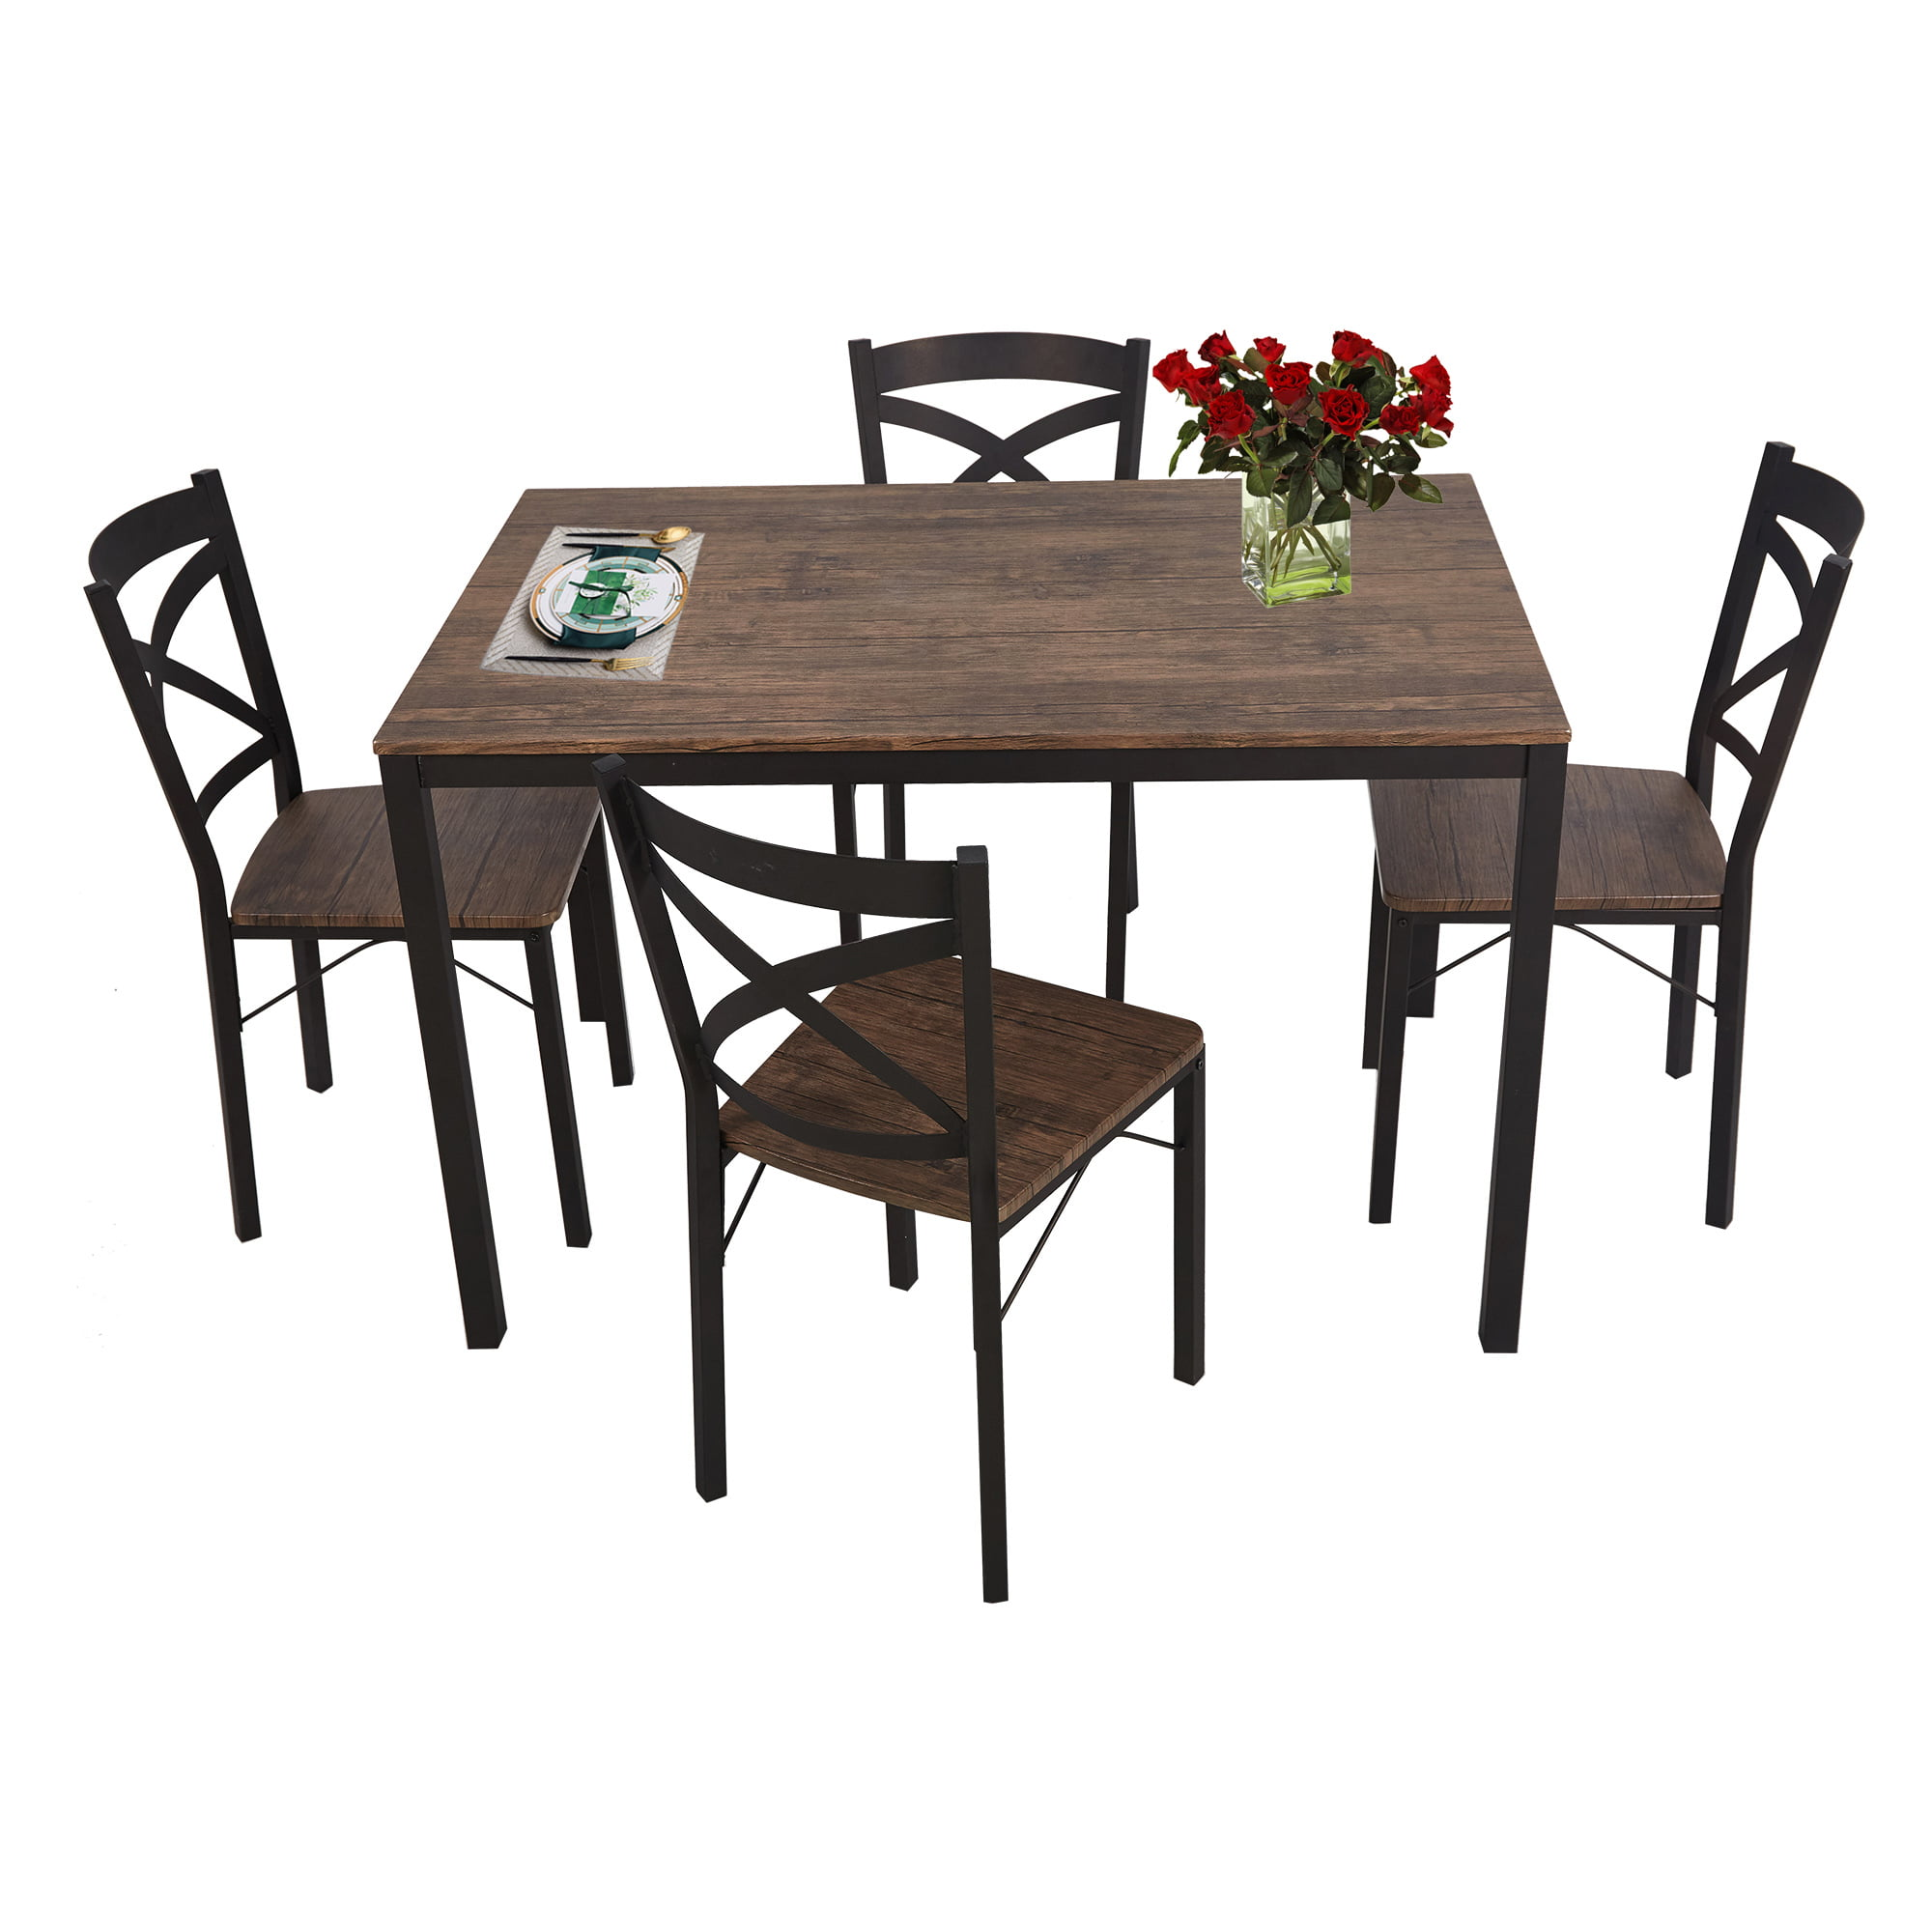 Karmas Product 5 Piece Dining Table Set For 4 Chairs Wood And Metal Kitchen Table Modern And Sleek Dinette Walmart Com Walmart Com